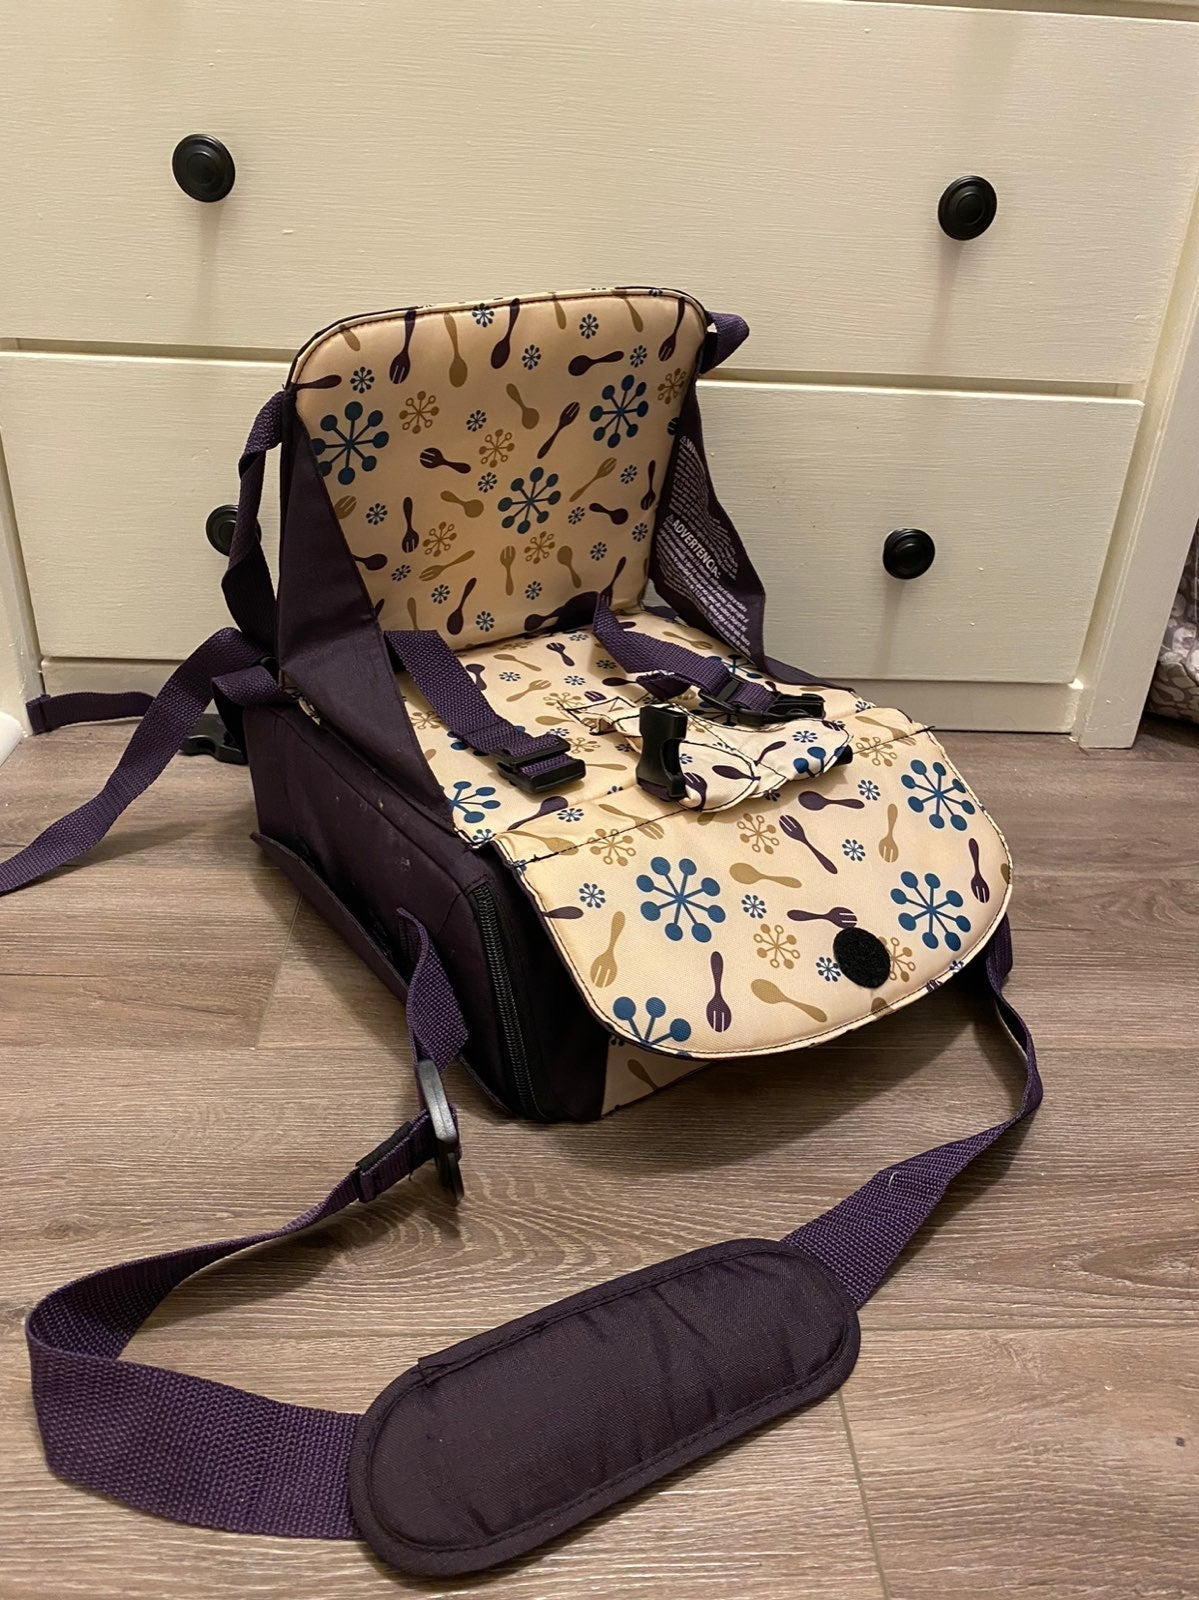 Travel booster chair